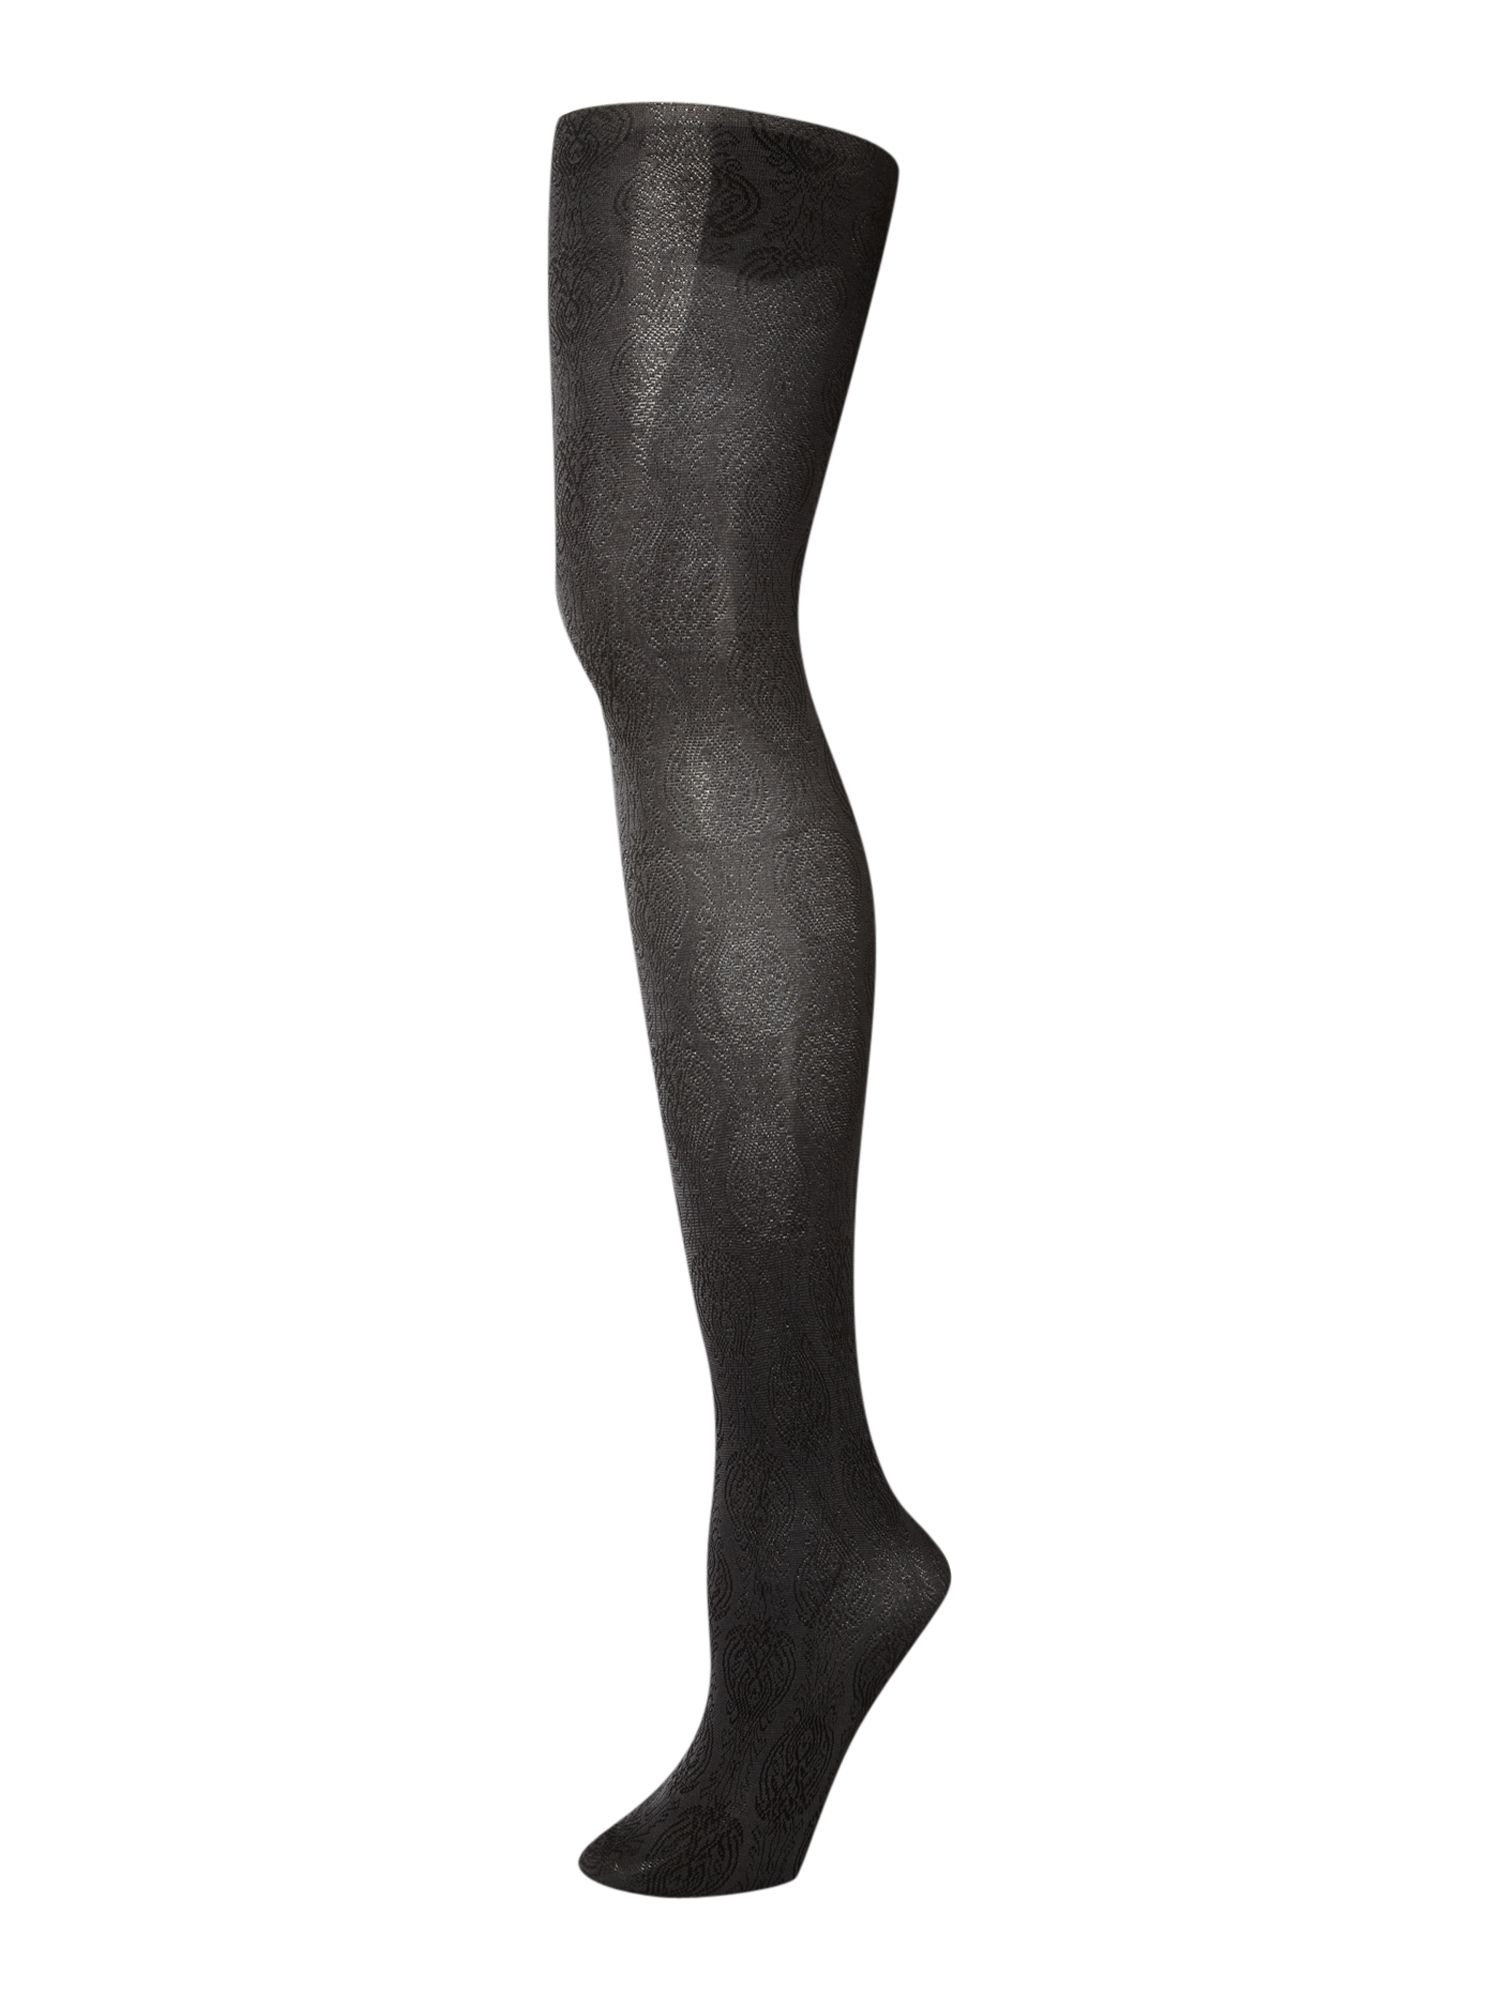 Chicago tights - reversible